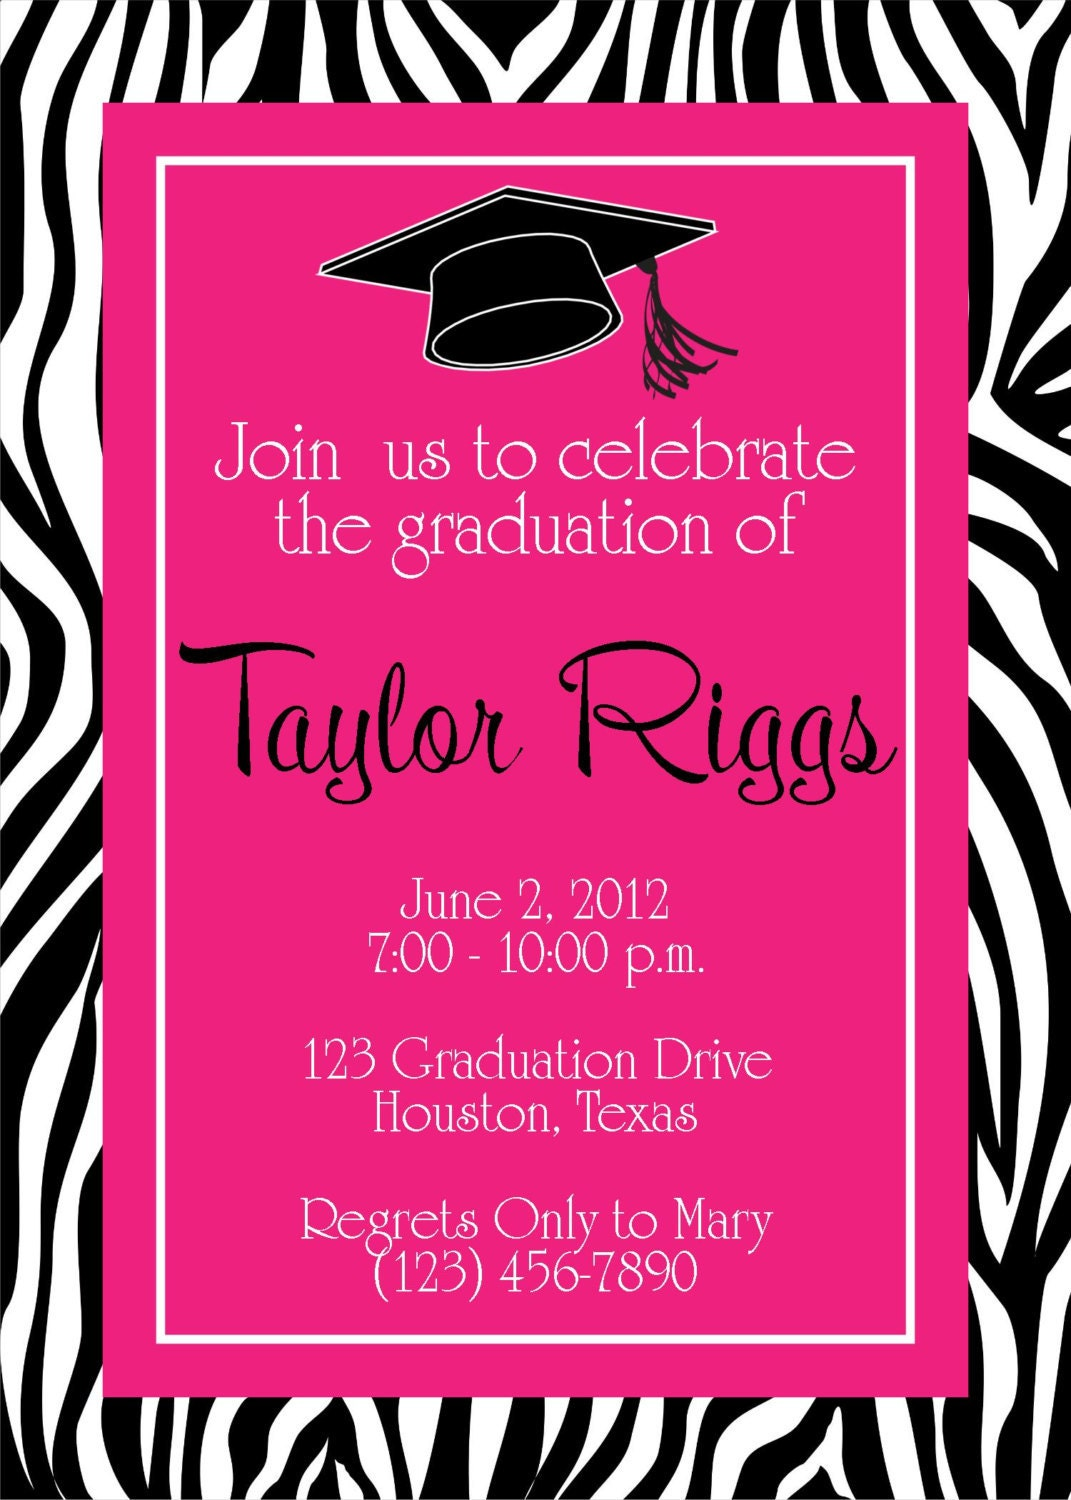 Graduation Zebra & Hot Pink Party Invitation by PartySoPerfect